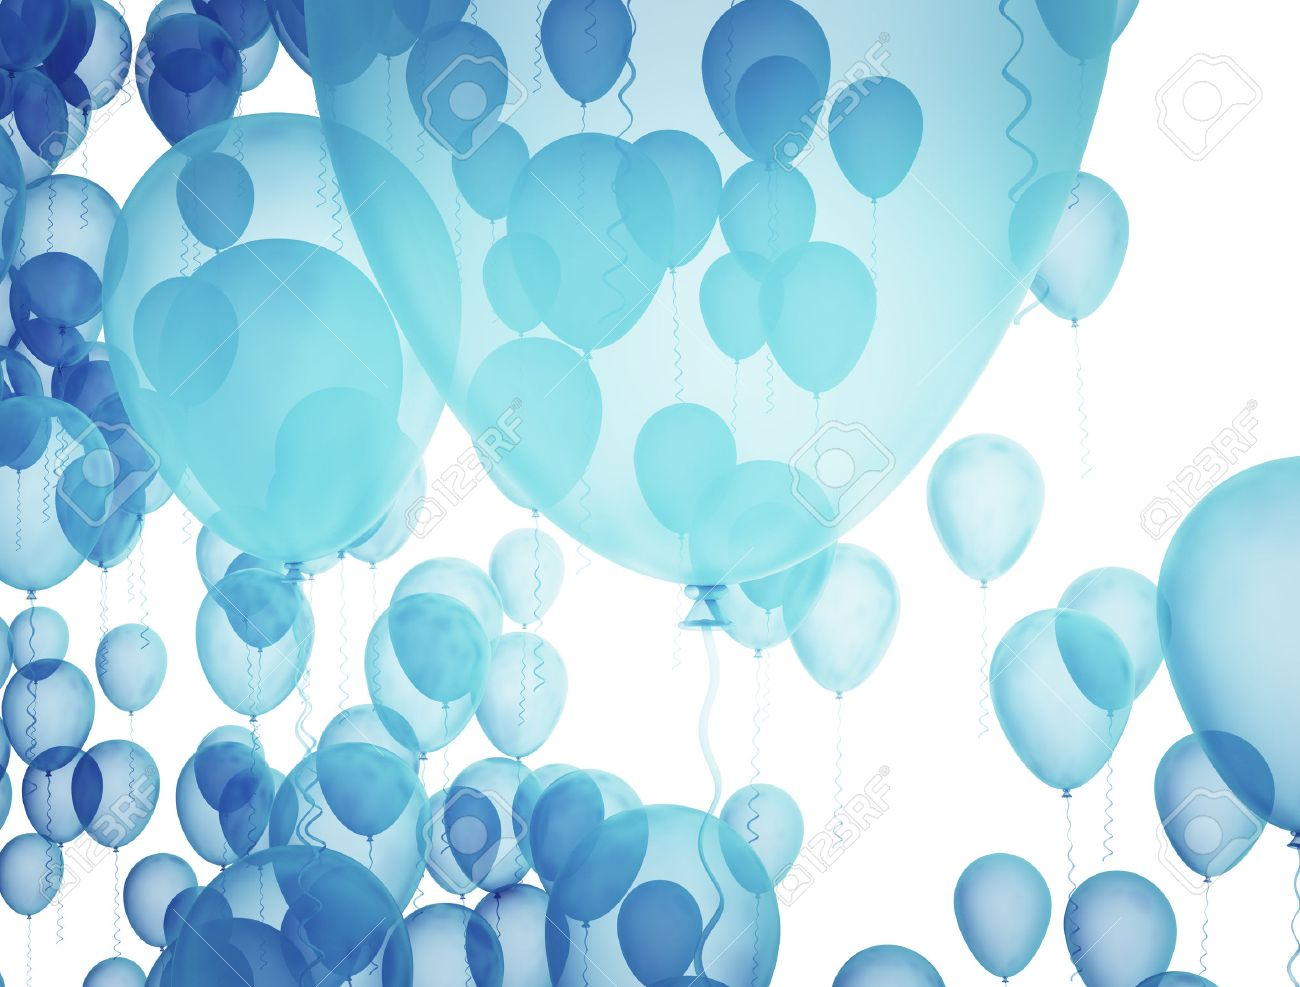 Blue Birthday Balloons Over White Background Stock Photo